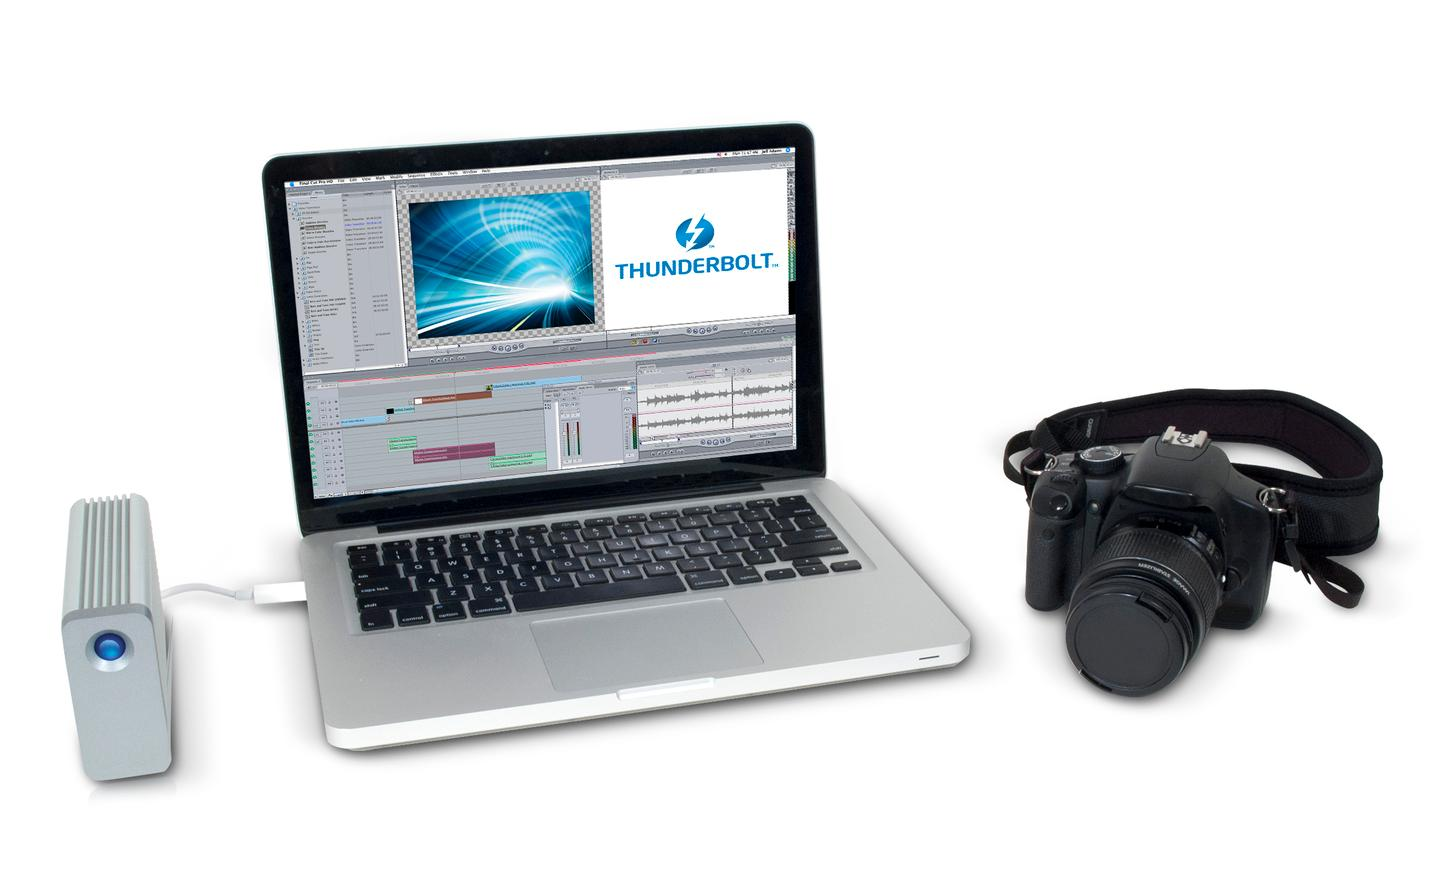 The LaCie Little Big Disk Thunderbolt Series SSD is aimed at professional photographers and videographers